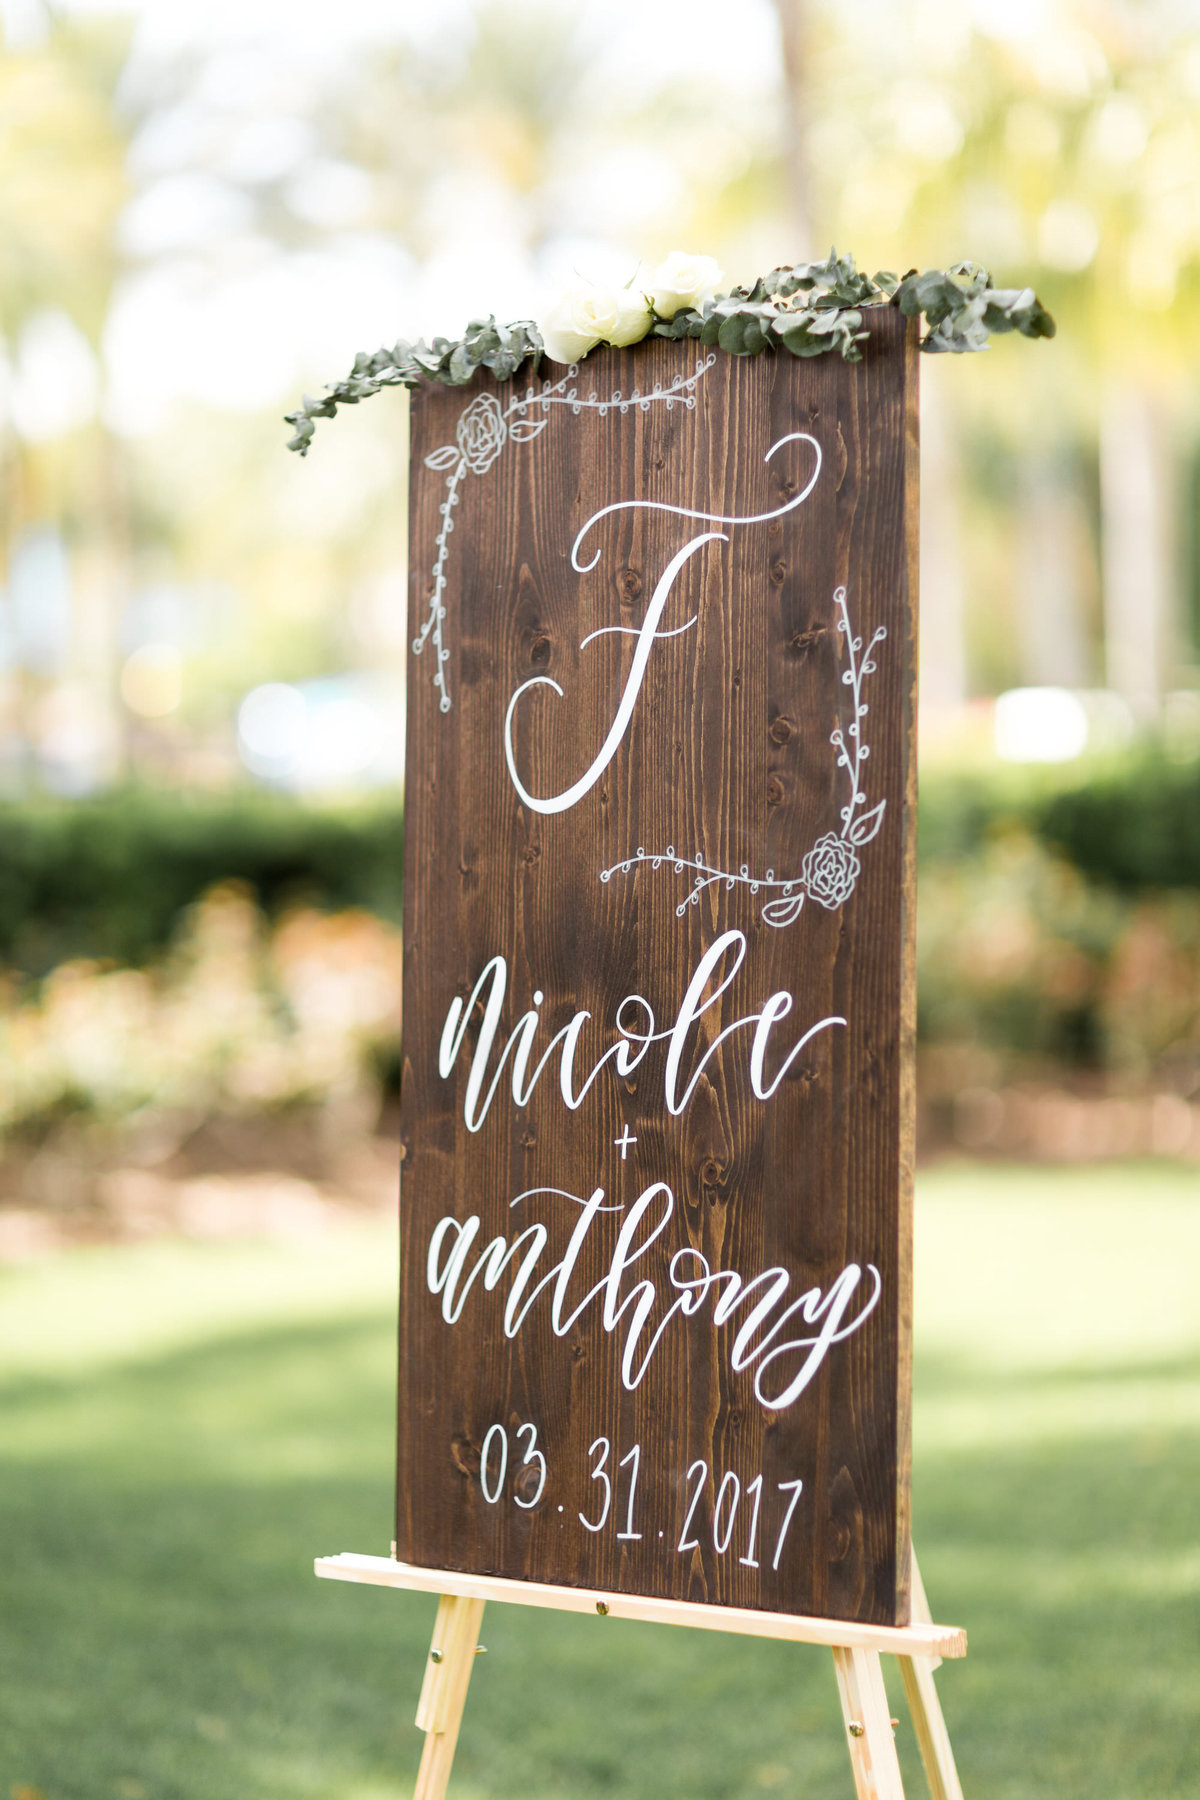 Bri-Cibene-Photography-Weddings_0187